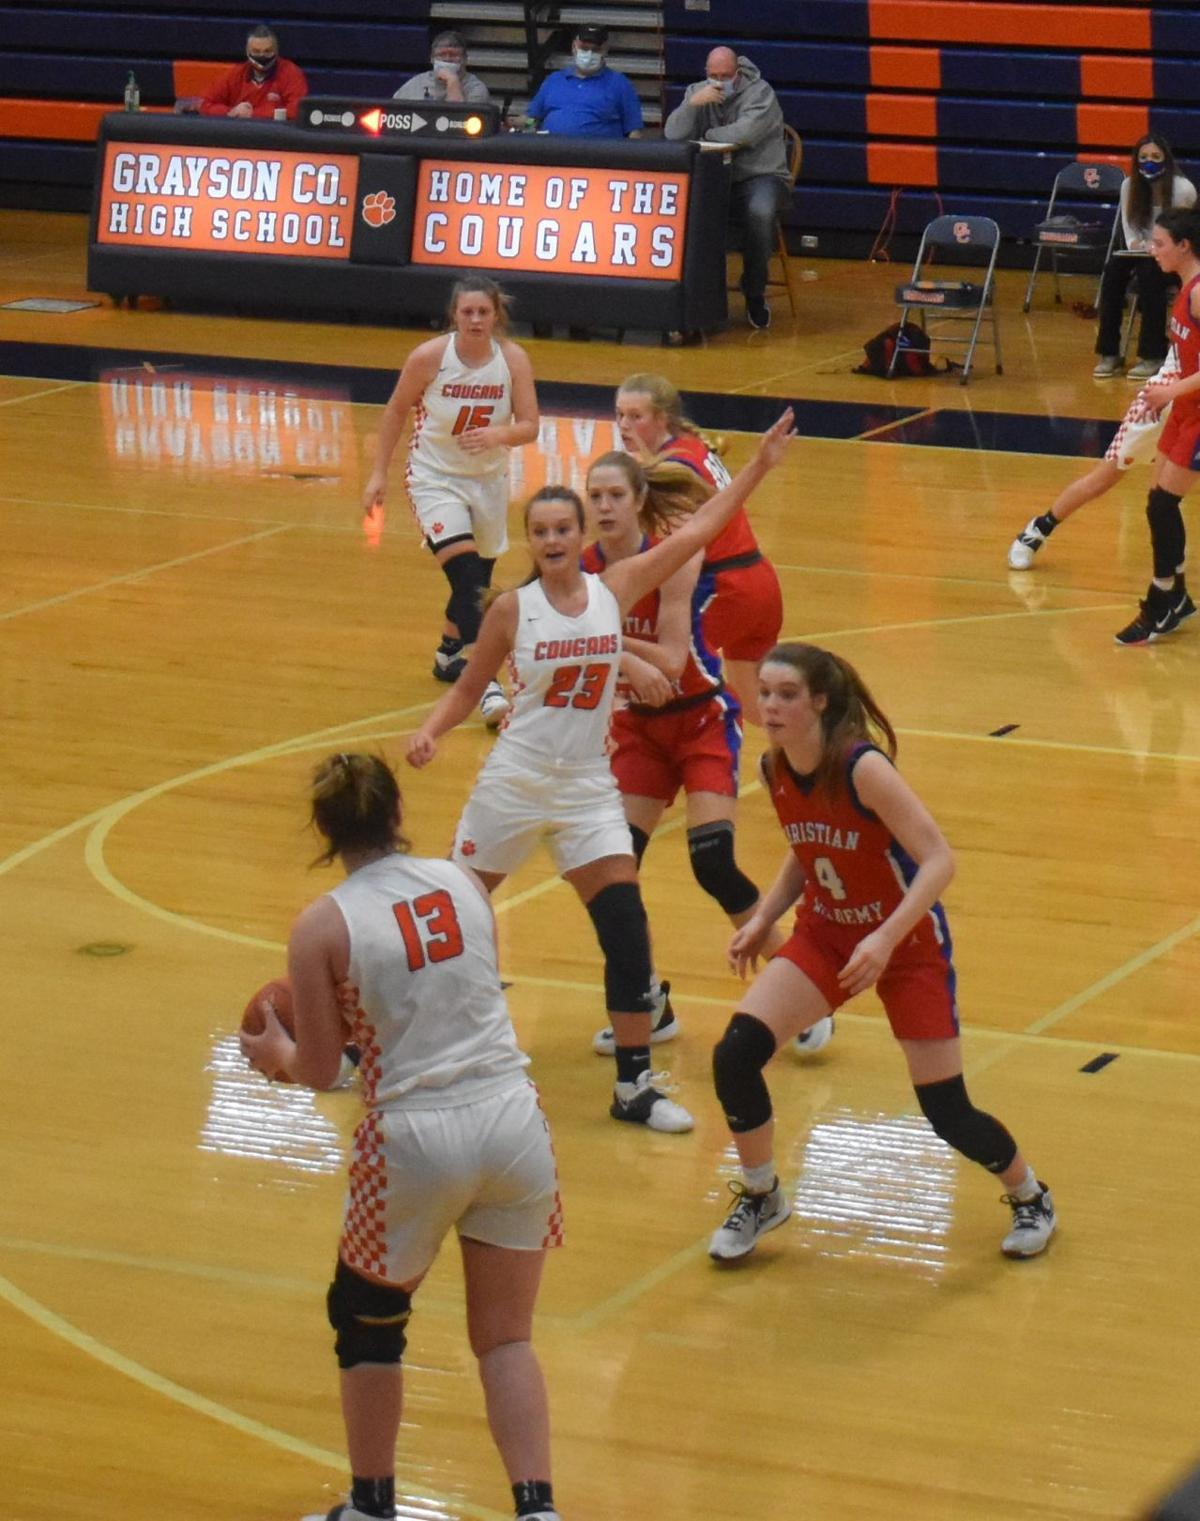 Lady Cougars fall to Lady Centurions, 42-60 2